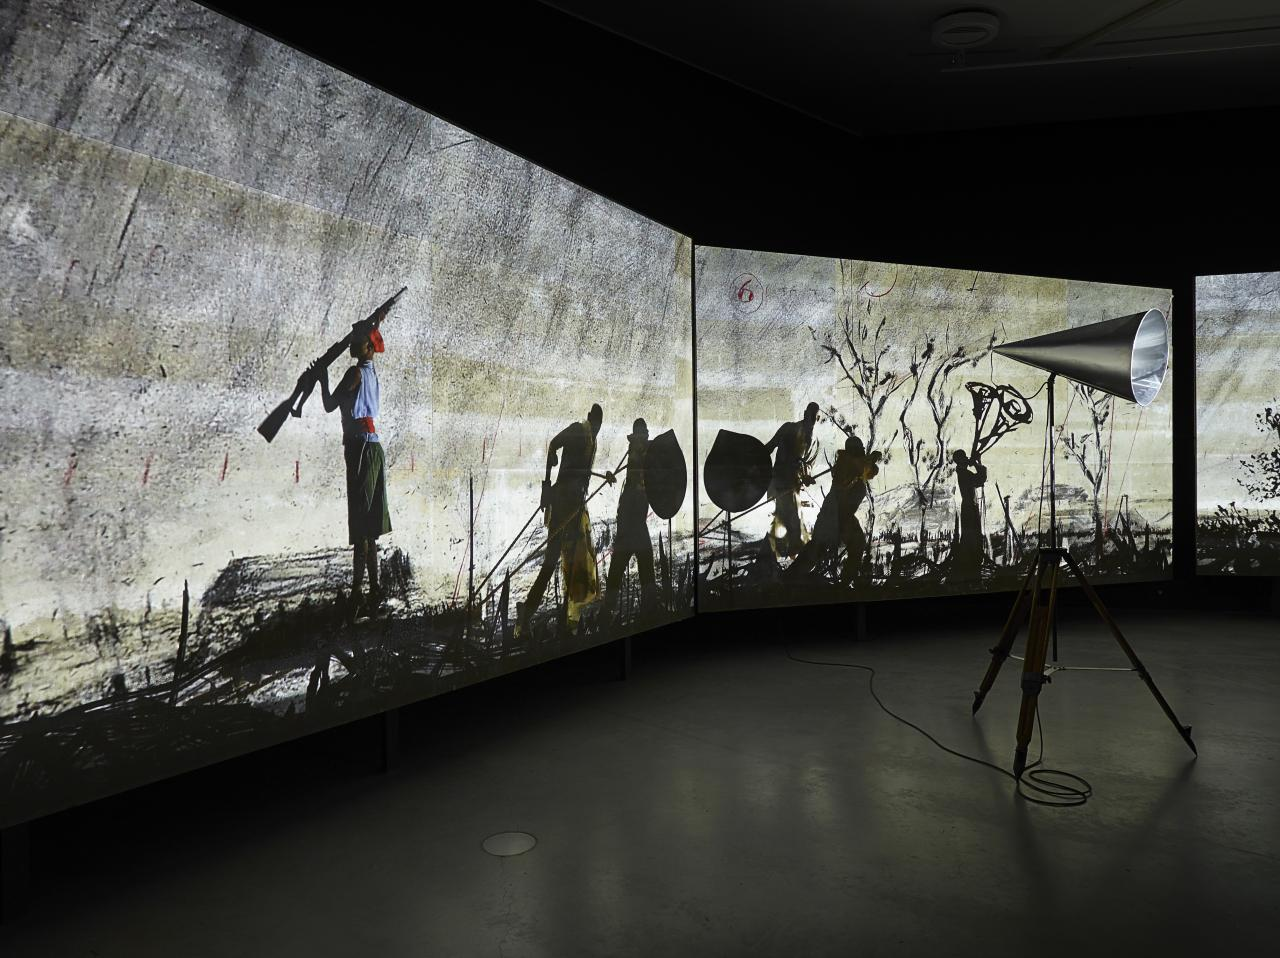 William Kentridge, More Sweetly Play the Dance, 2015, Amsterdam, Installation im Eye Filmmuseum, Schattenfiguren auf Betonwand, Copyright Photography: Studio Hans Wilschut. Courtesy William Kentridge Studio